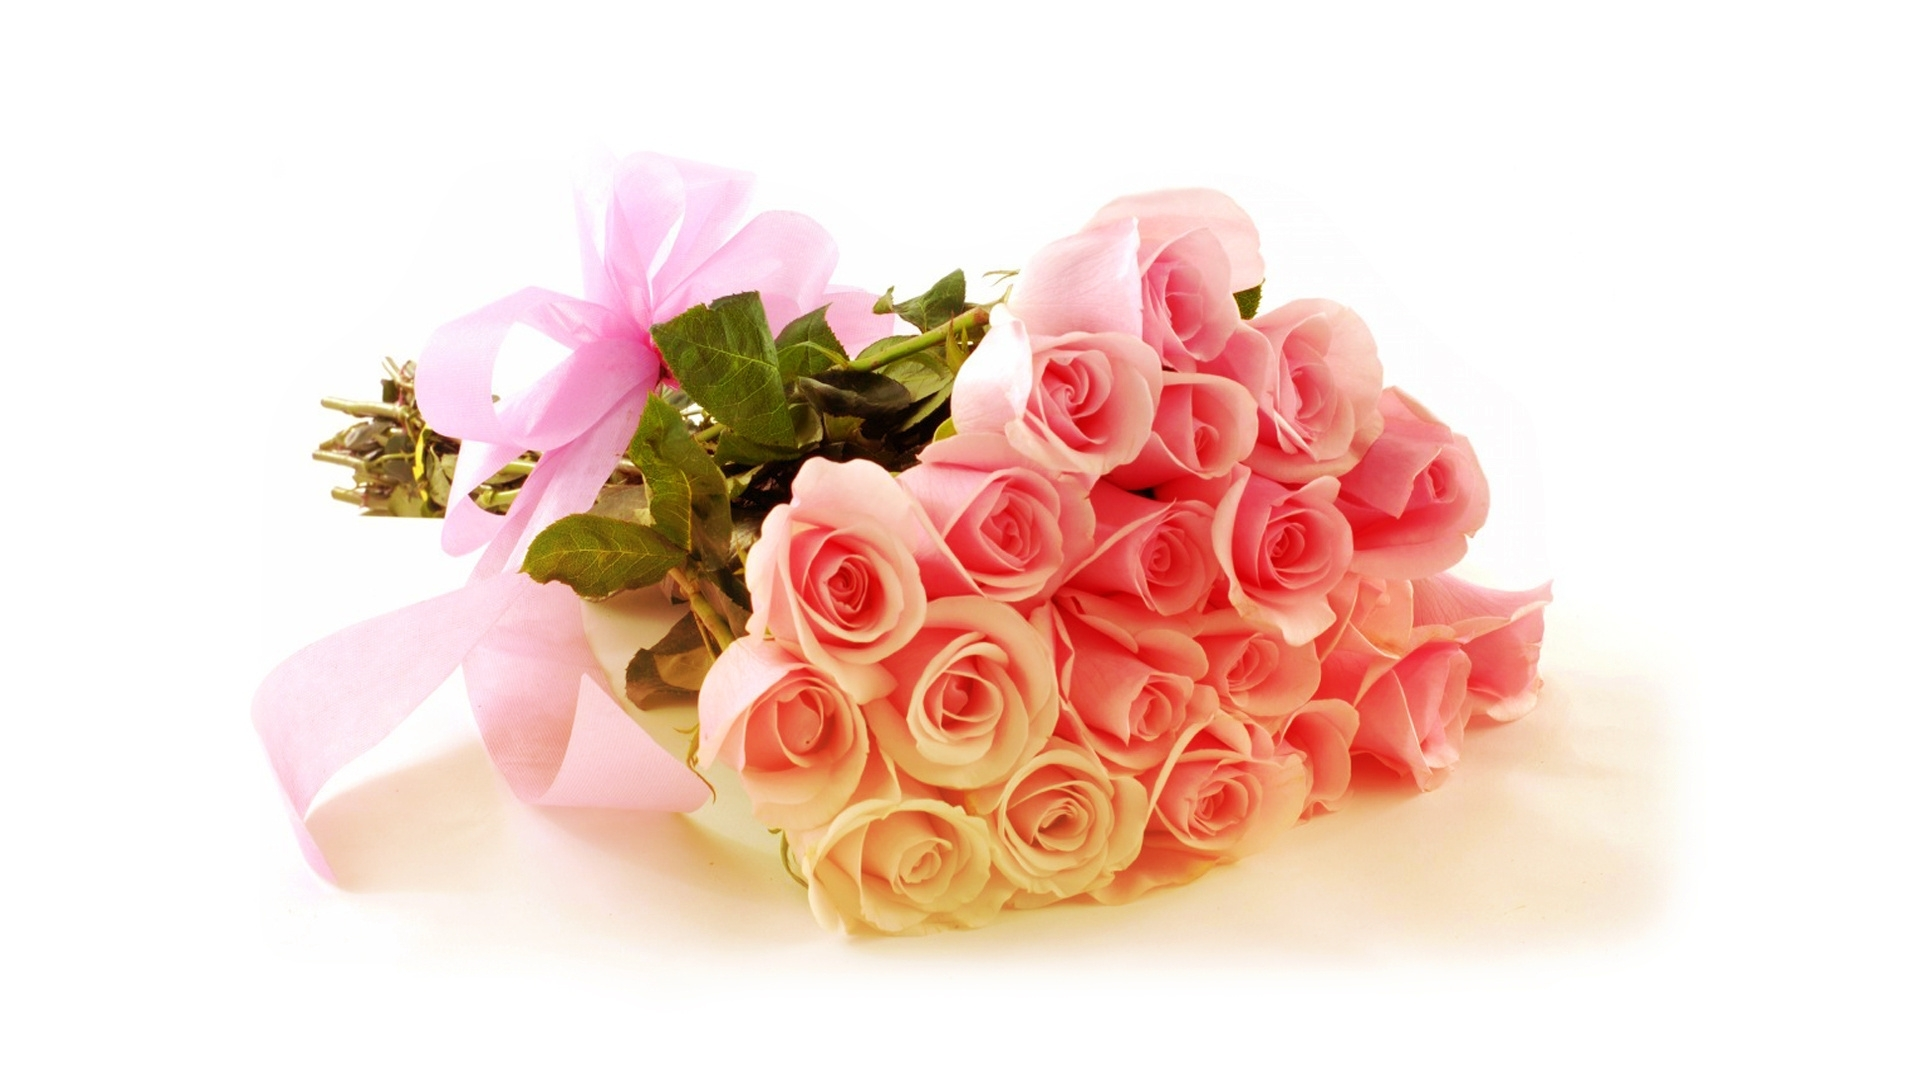 Bouquets have been used for a long time to decorate home and buildings worldwide. The oldest trace of flower bouquet dates back to 2500 BCE.